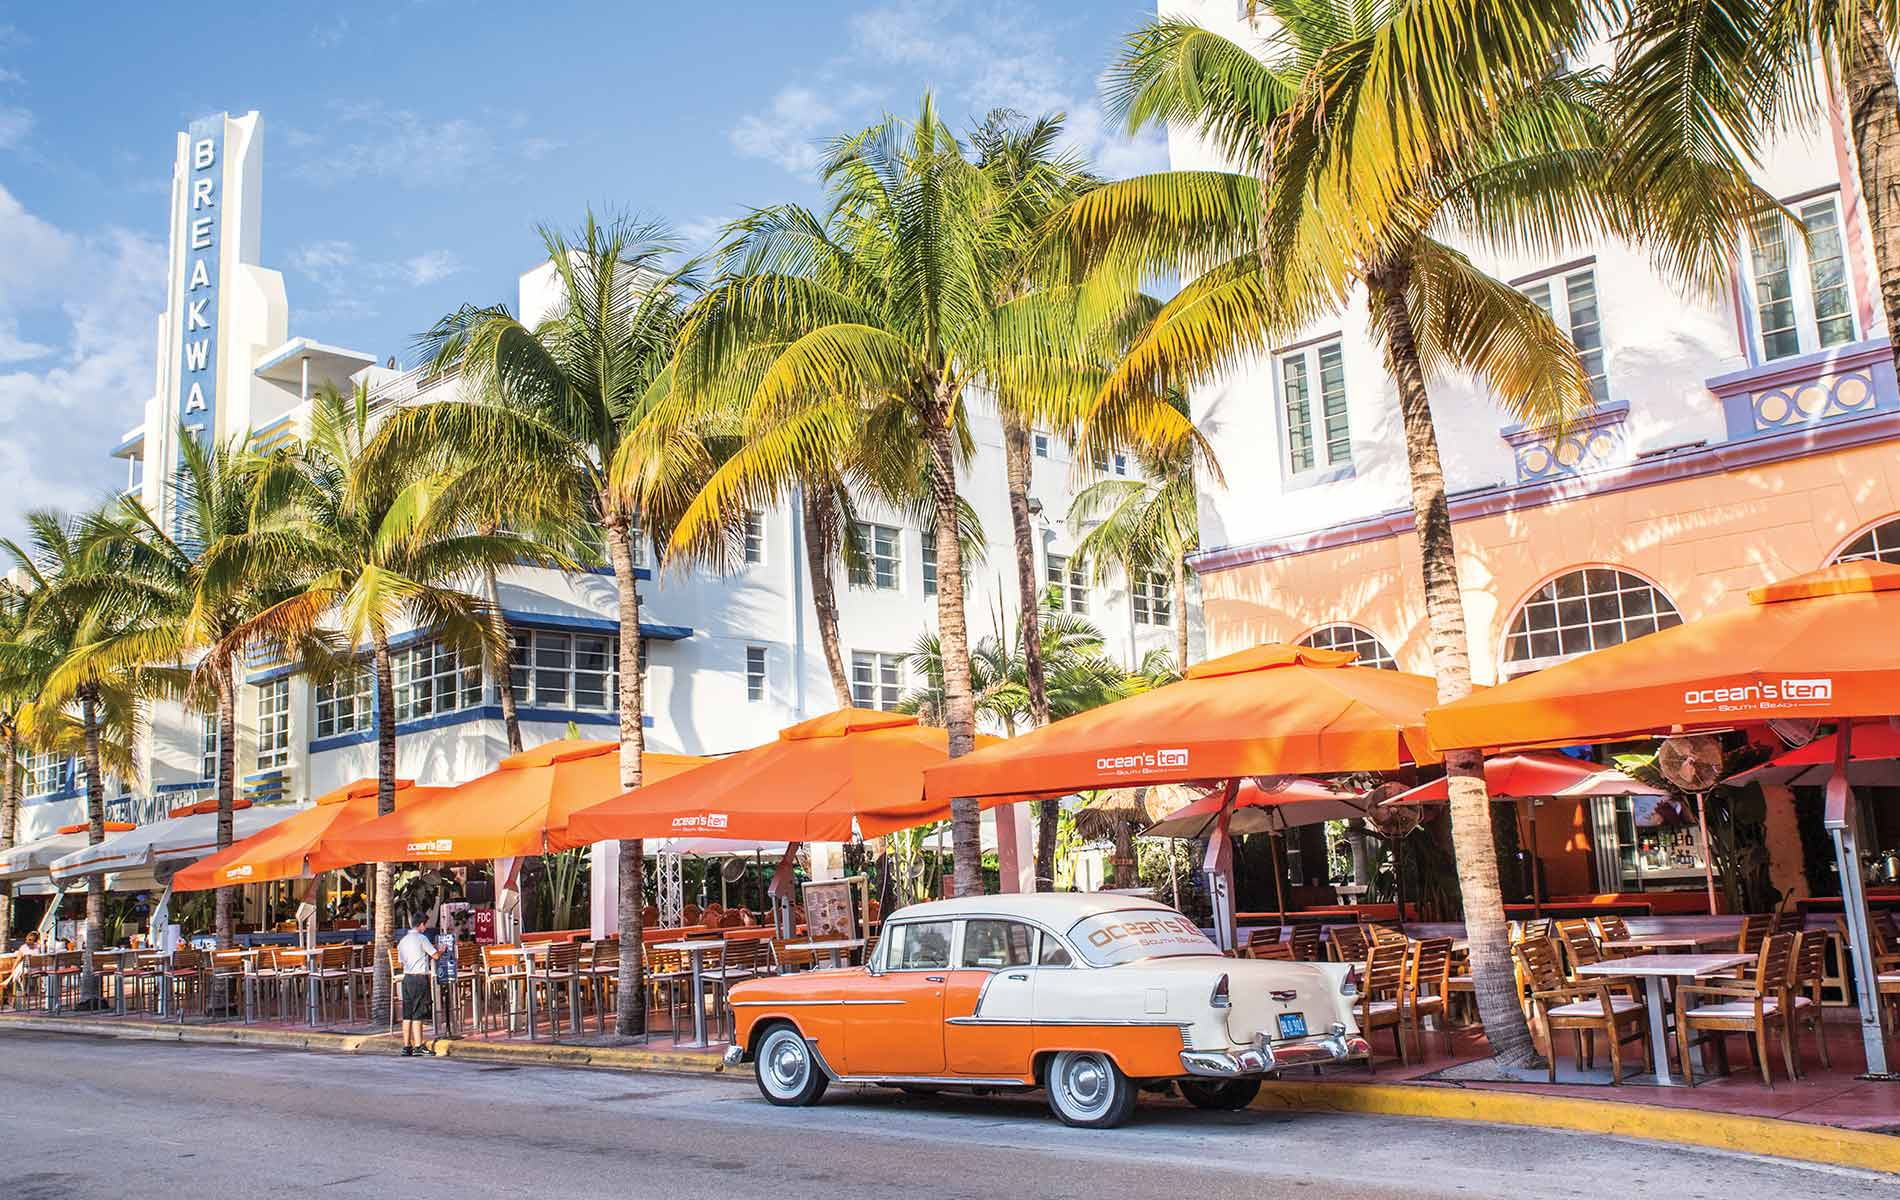 Ocean Drive is an iconic strip running along the Art Deco District of Miami's South Beach neighborhood. Photo by LittleNY / Shutterstock